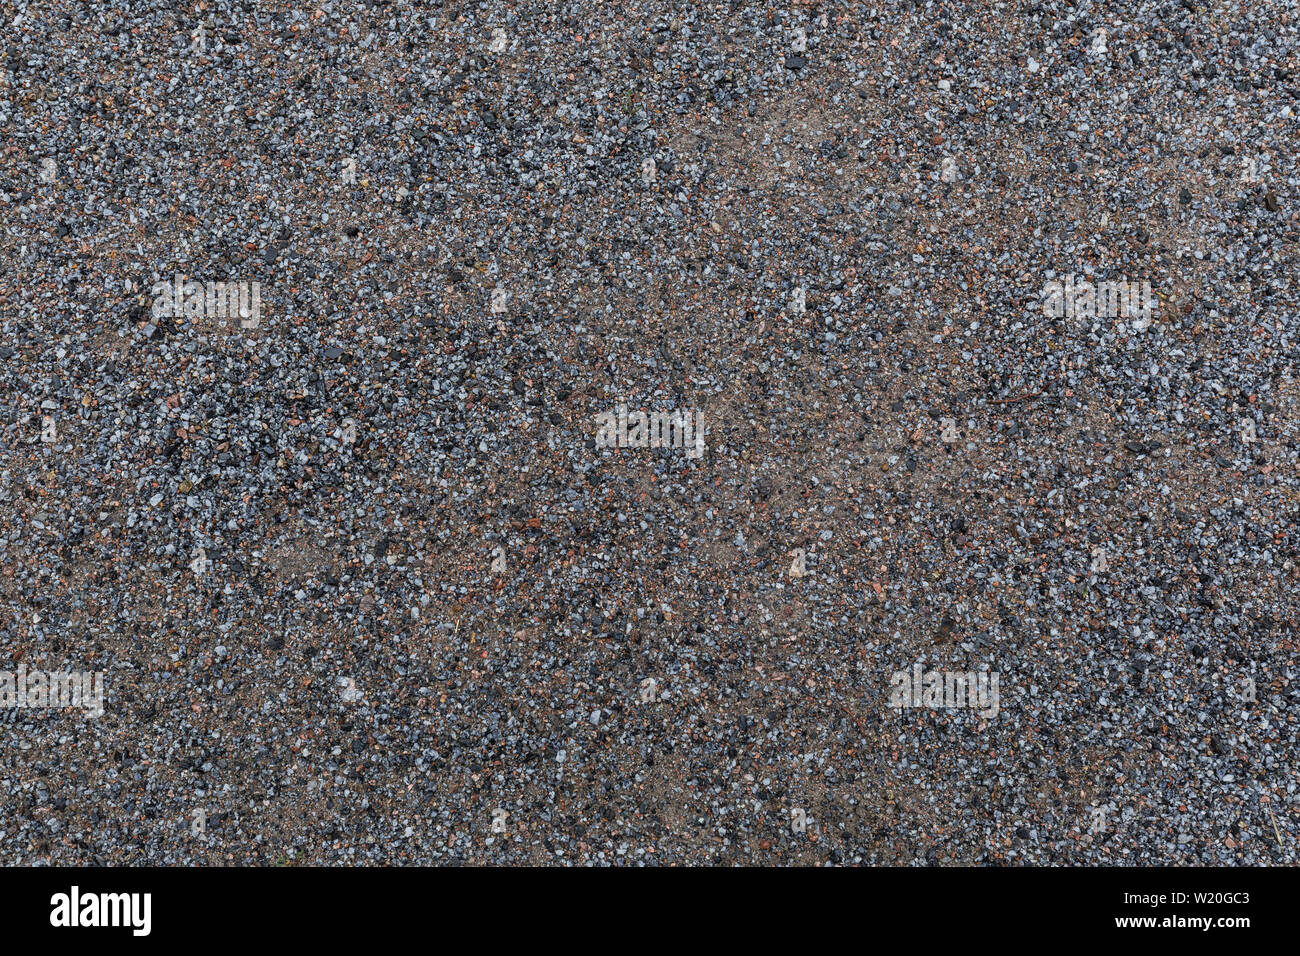 High resolution full frame textured background of wet sandy ground with gravel, viewed from above. Stock Photo